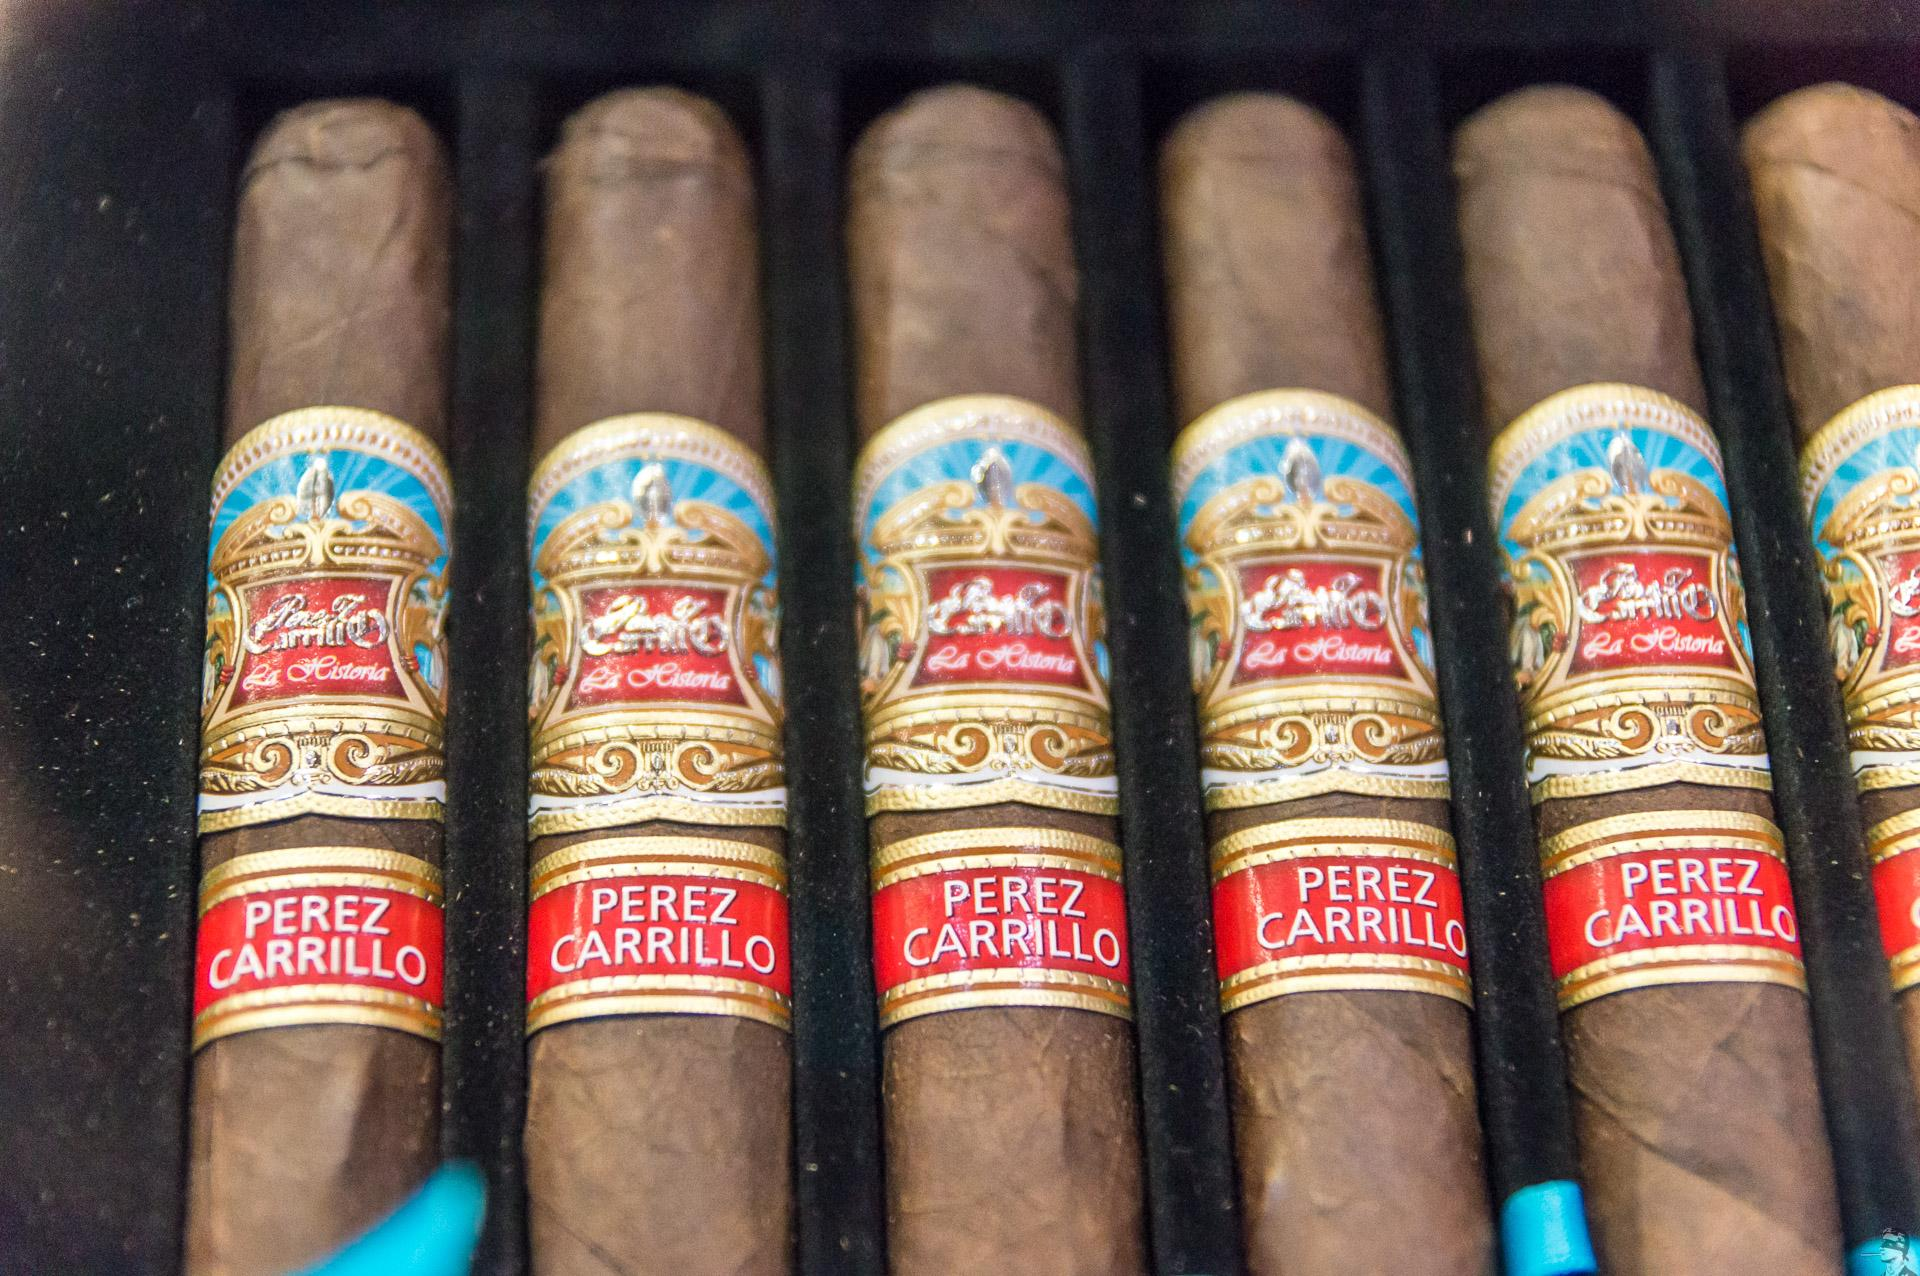 IPCPR 2014: The Show in Pictures – E.P. Carrillo